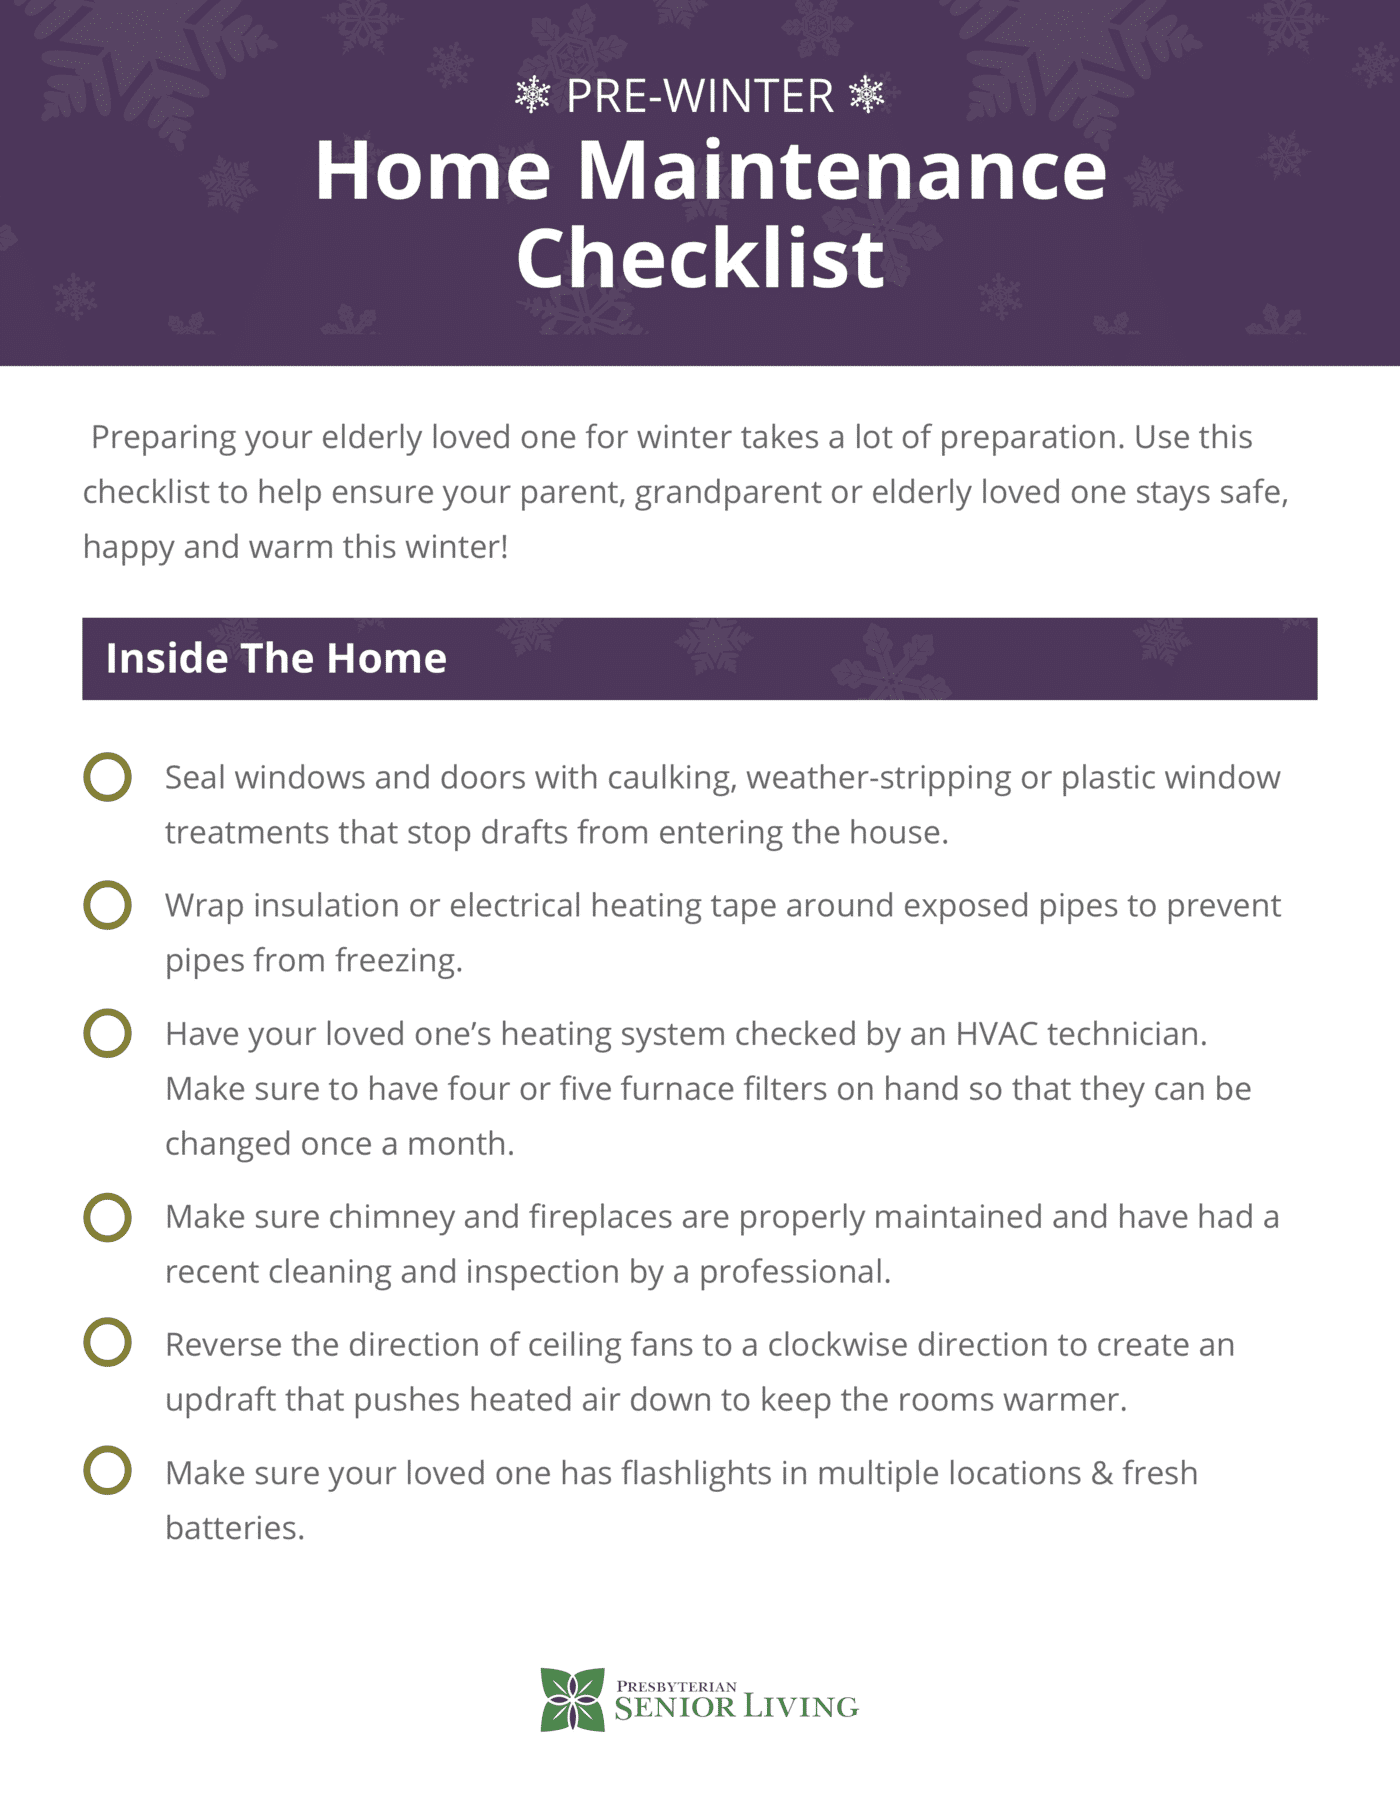 Pre-Winter-Home-Maintenance-Checklist-Seniors